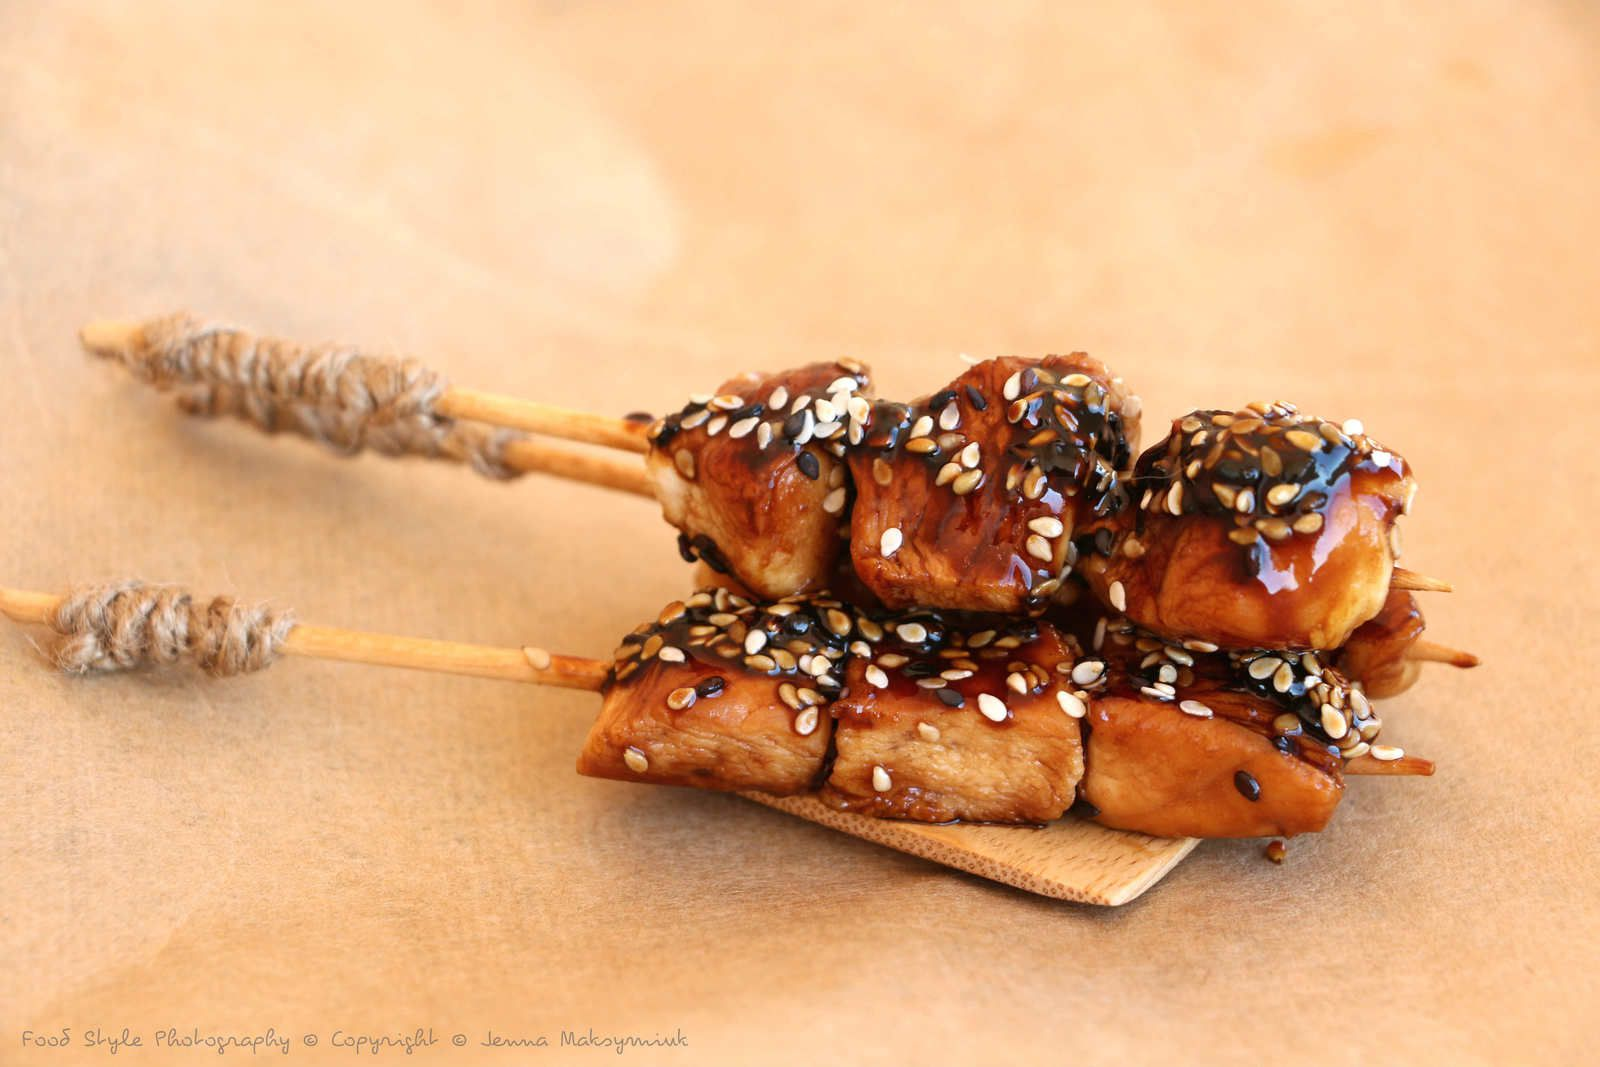 Poulet teriyaki Food Style Photography © Copyright © Jenna Maksymiuk